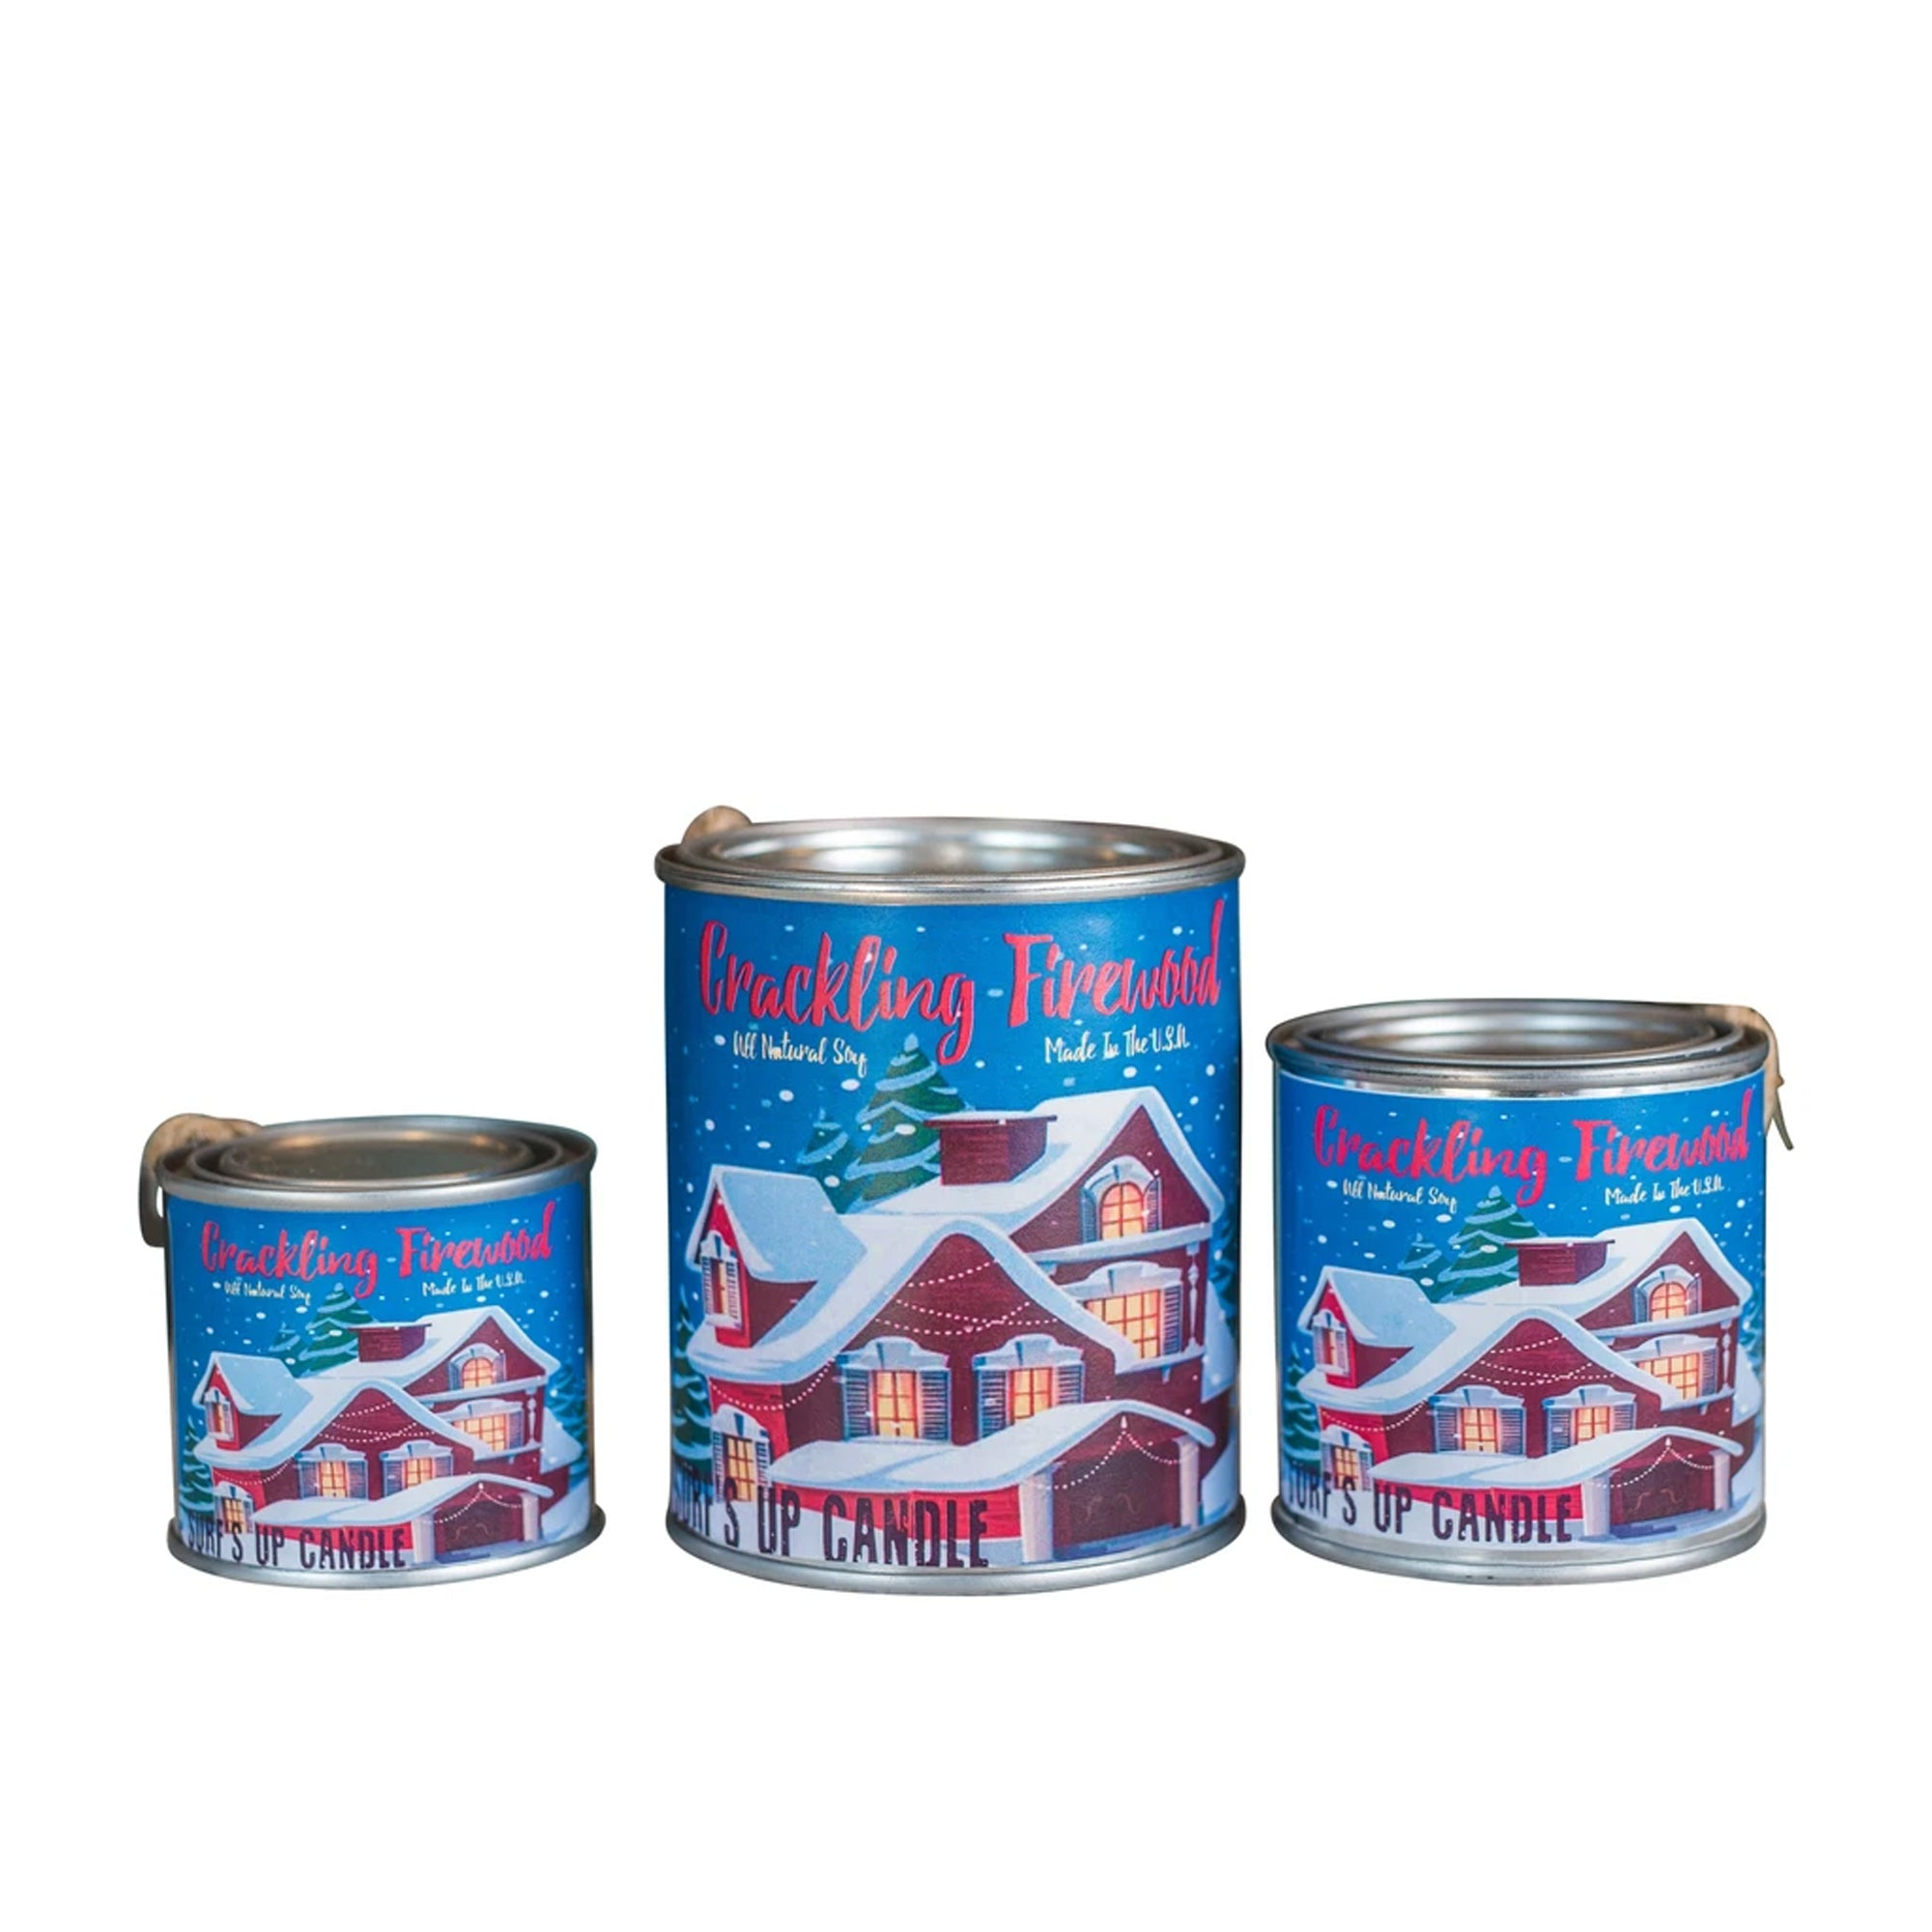 Surf's Up Seasonal Paint Can Soy Candle - Crackling Firewood